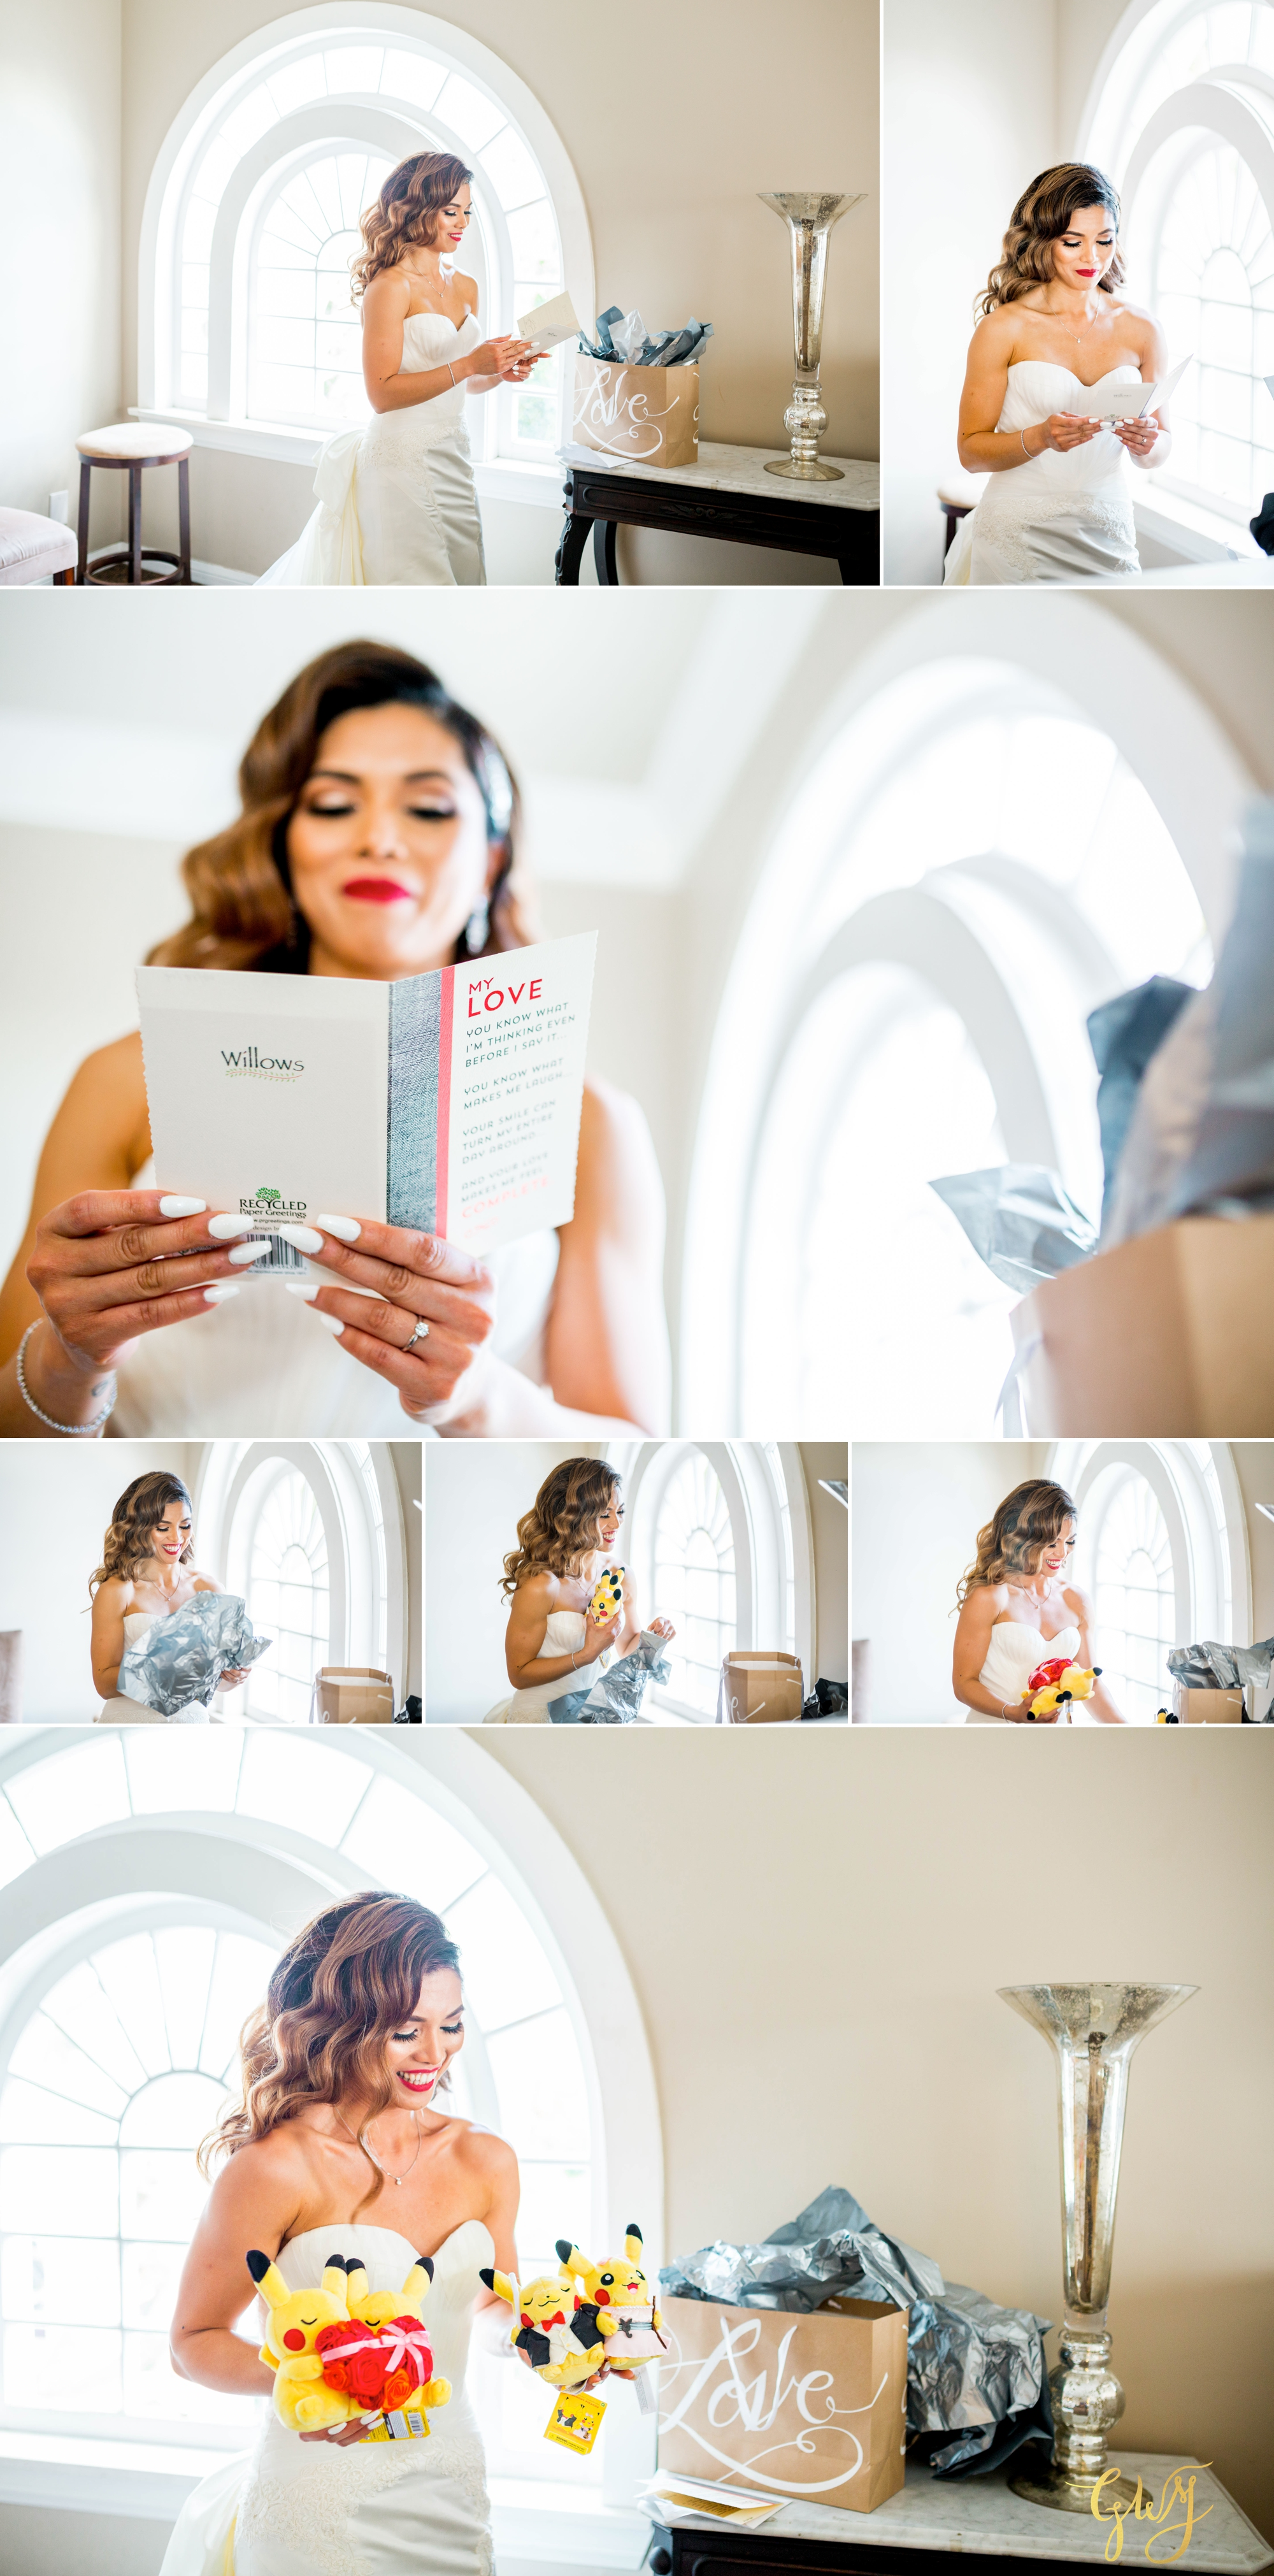 Andy + Caselyn's White House Event Center Orange County Spring Wedding by Glass Woods Media 23.jpg